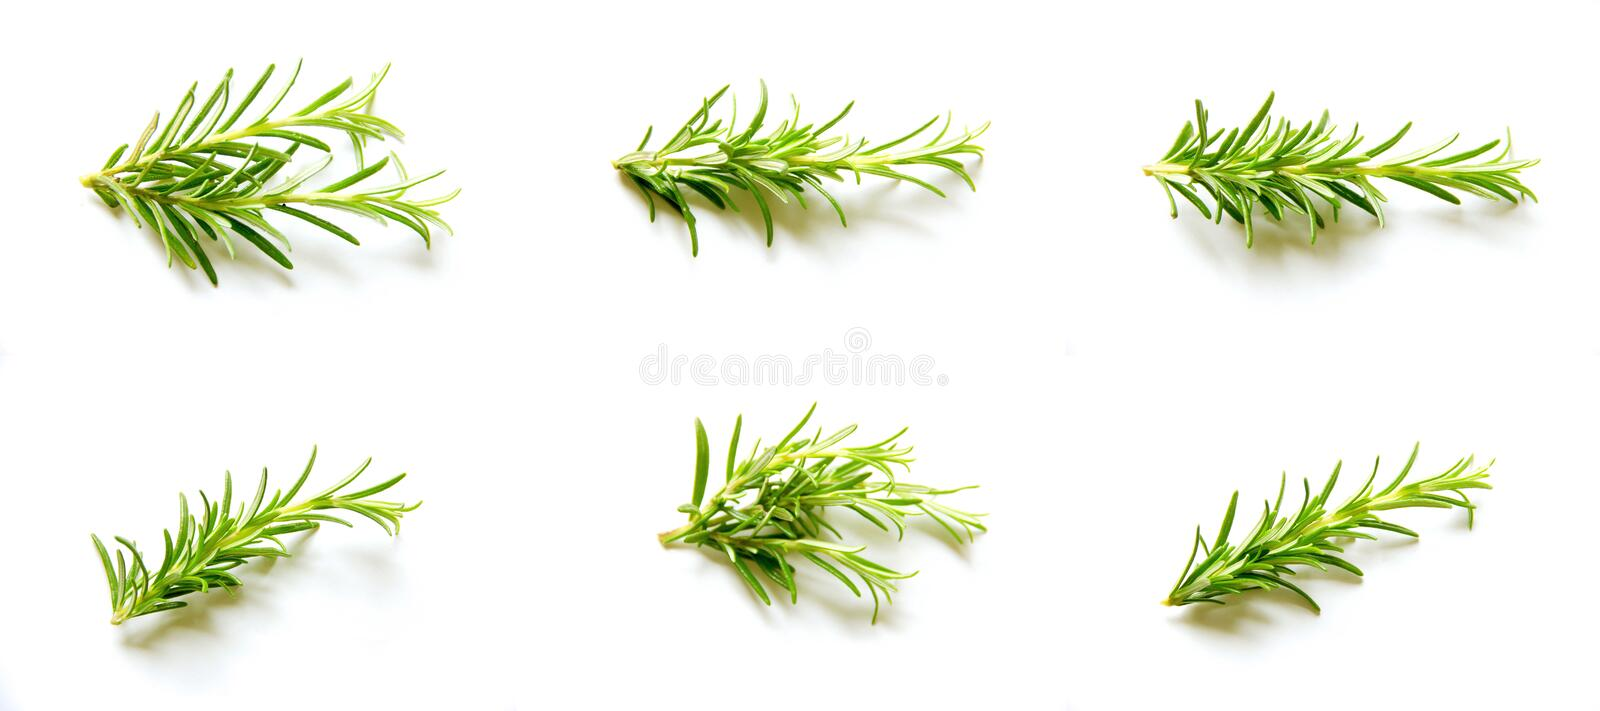 Plant, Branch, Pine Family, Grass royalty free stock photo